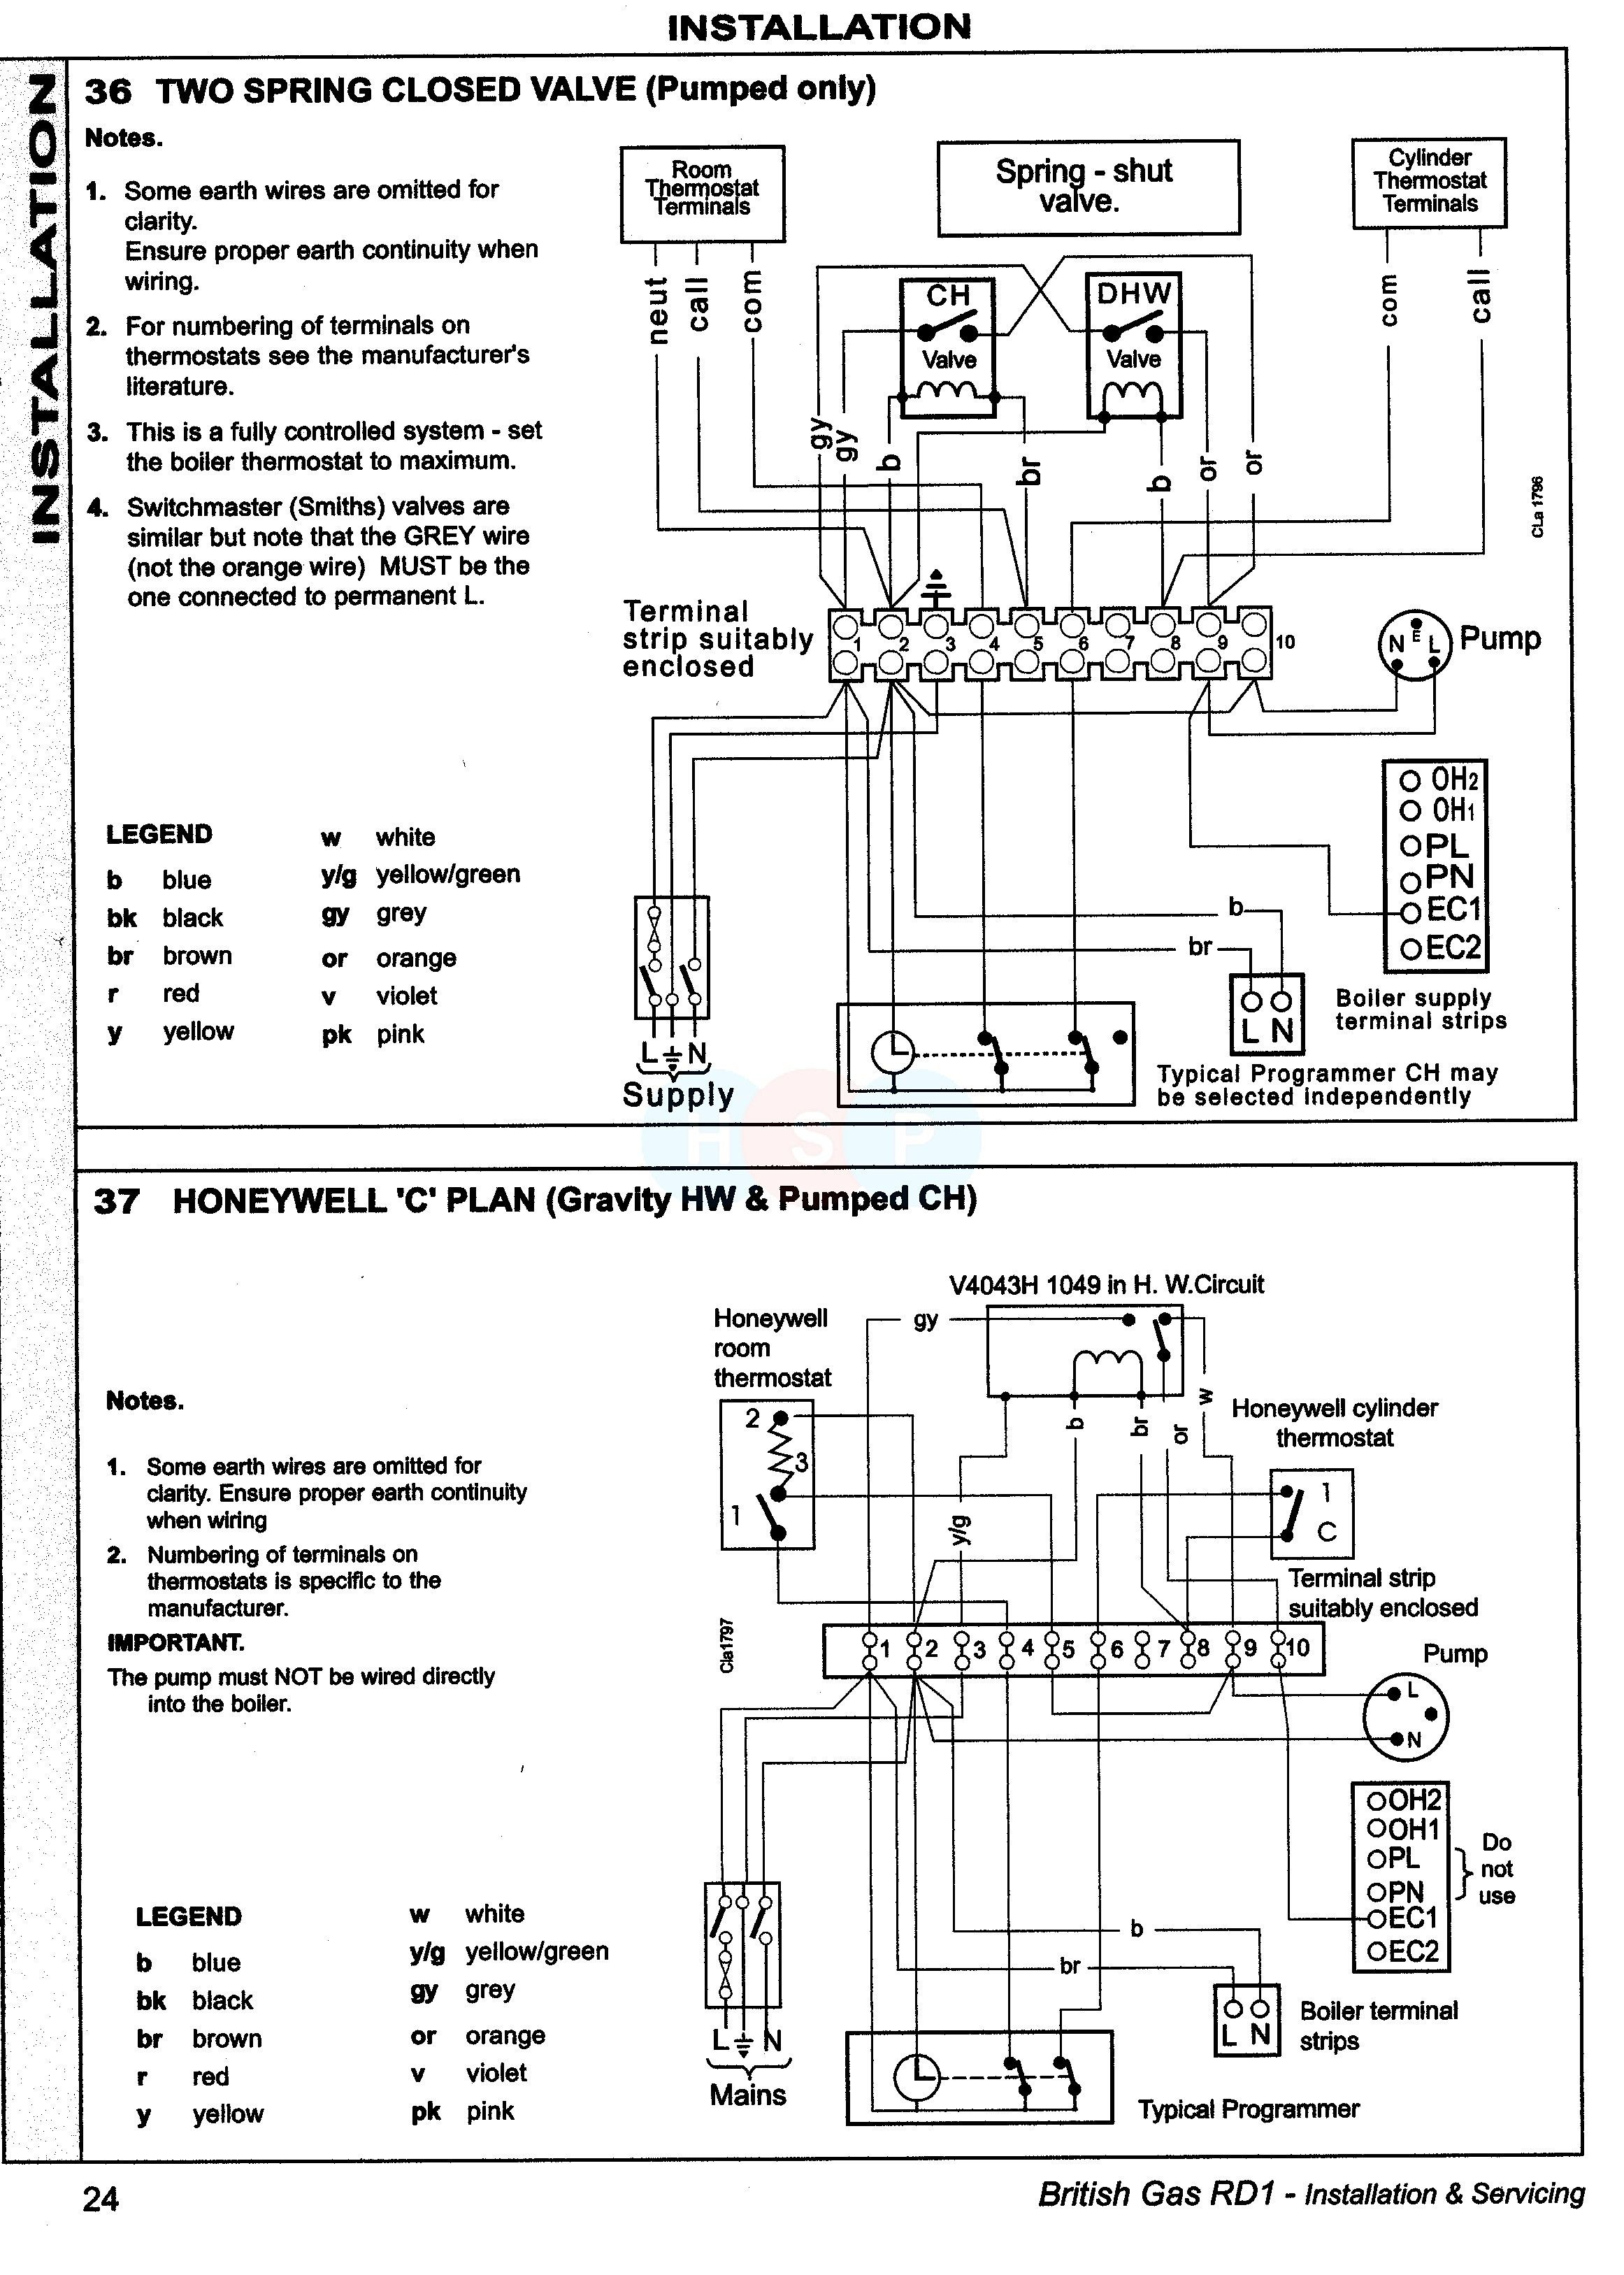 small resolution of lovely wiring diagram for honeywell s plan diagrams digramssample diagramimages wiringdiagramsample